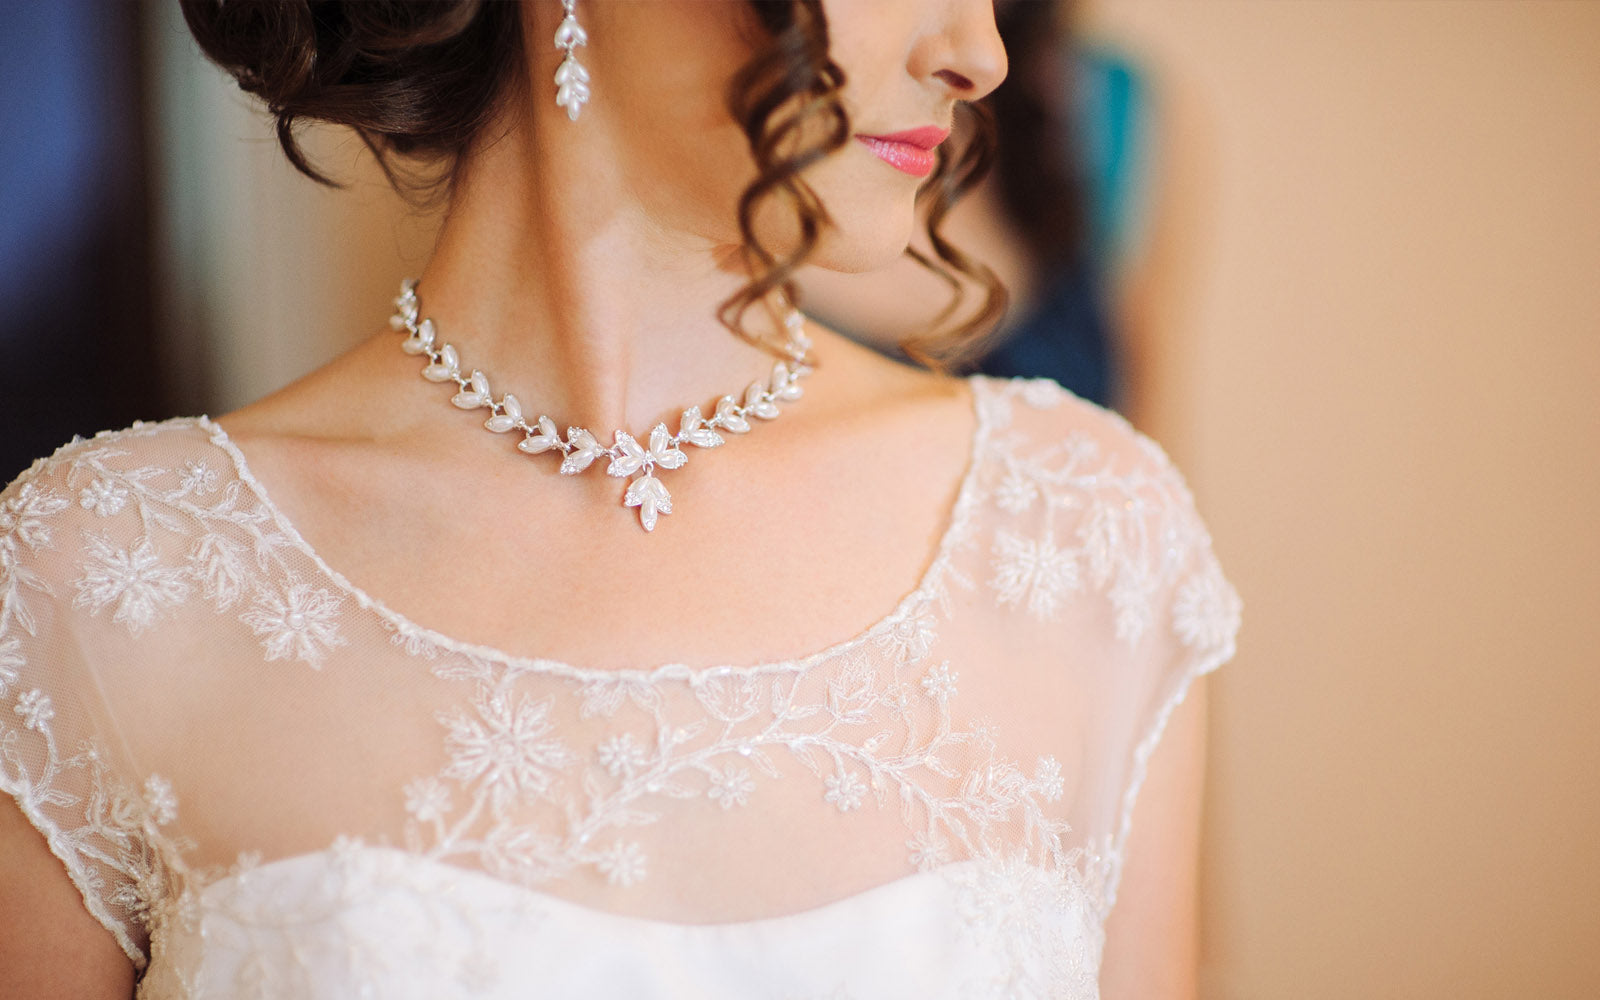 Wedding Dress Accessories And Jewelry Your Ultimate Guide